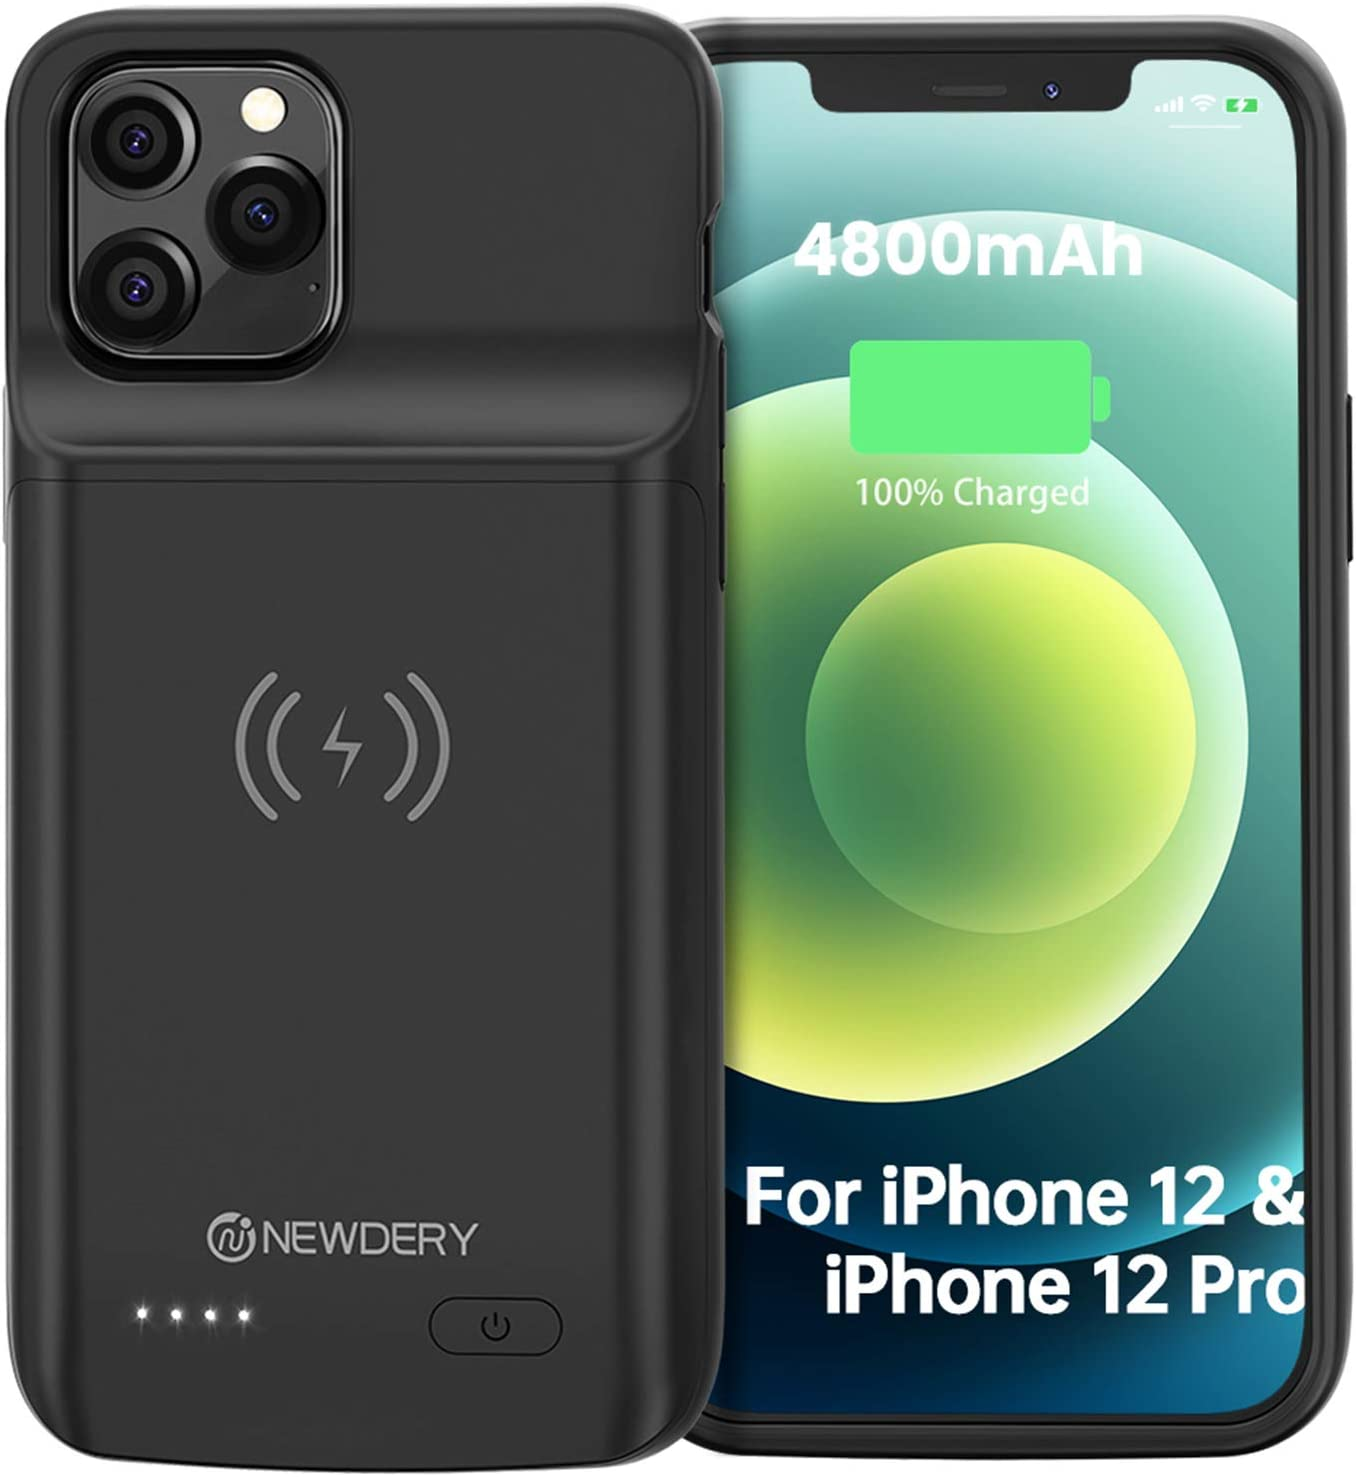 Battery Case for iPhone 12 Pro/iPhone 12, 4800mAh Slim Portable Protective Extended Charger Cover, qi Wireless Charging Supported, Compatible with iPhone 12 Pro/iPhone 12-6.1 inch